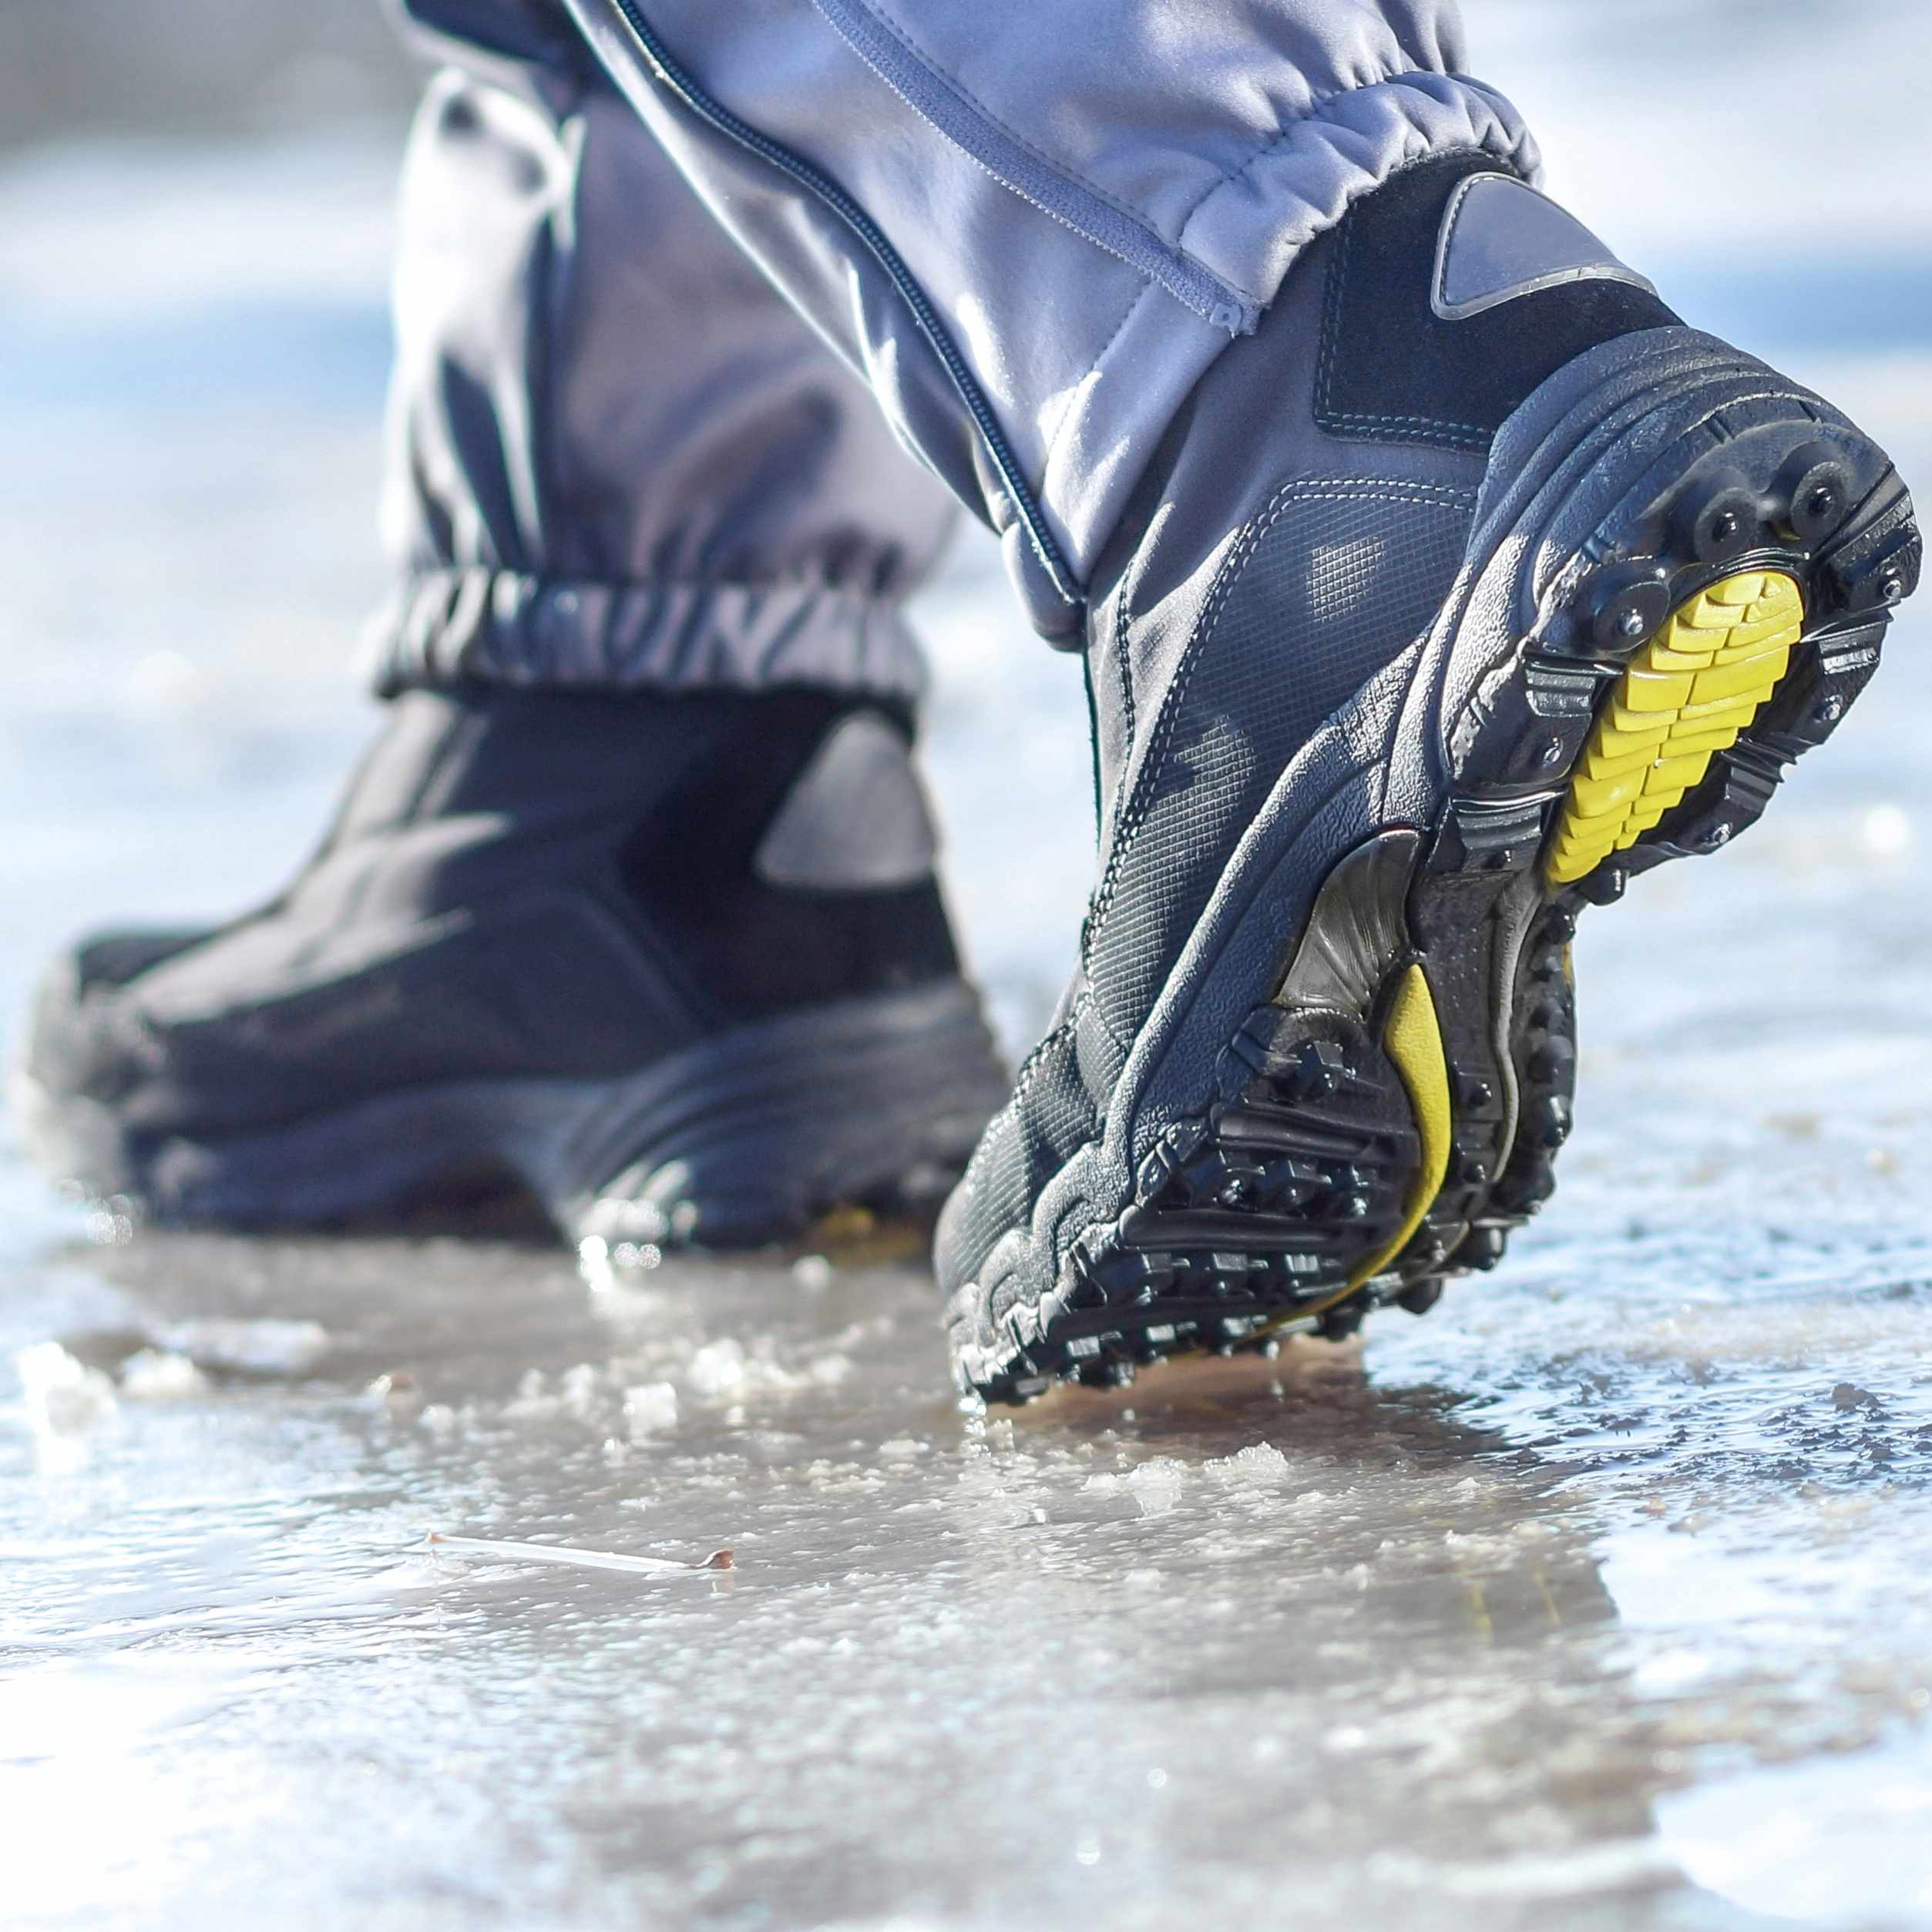 a person wearing winter boots and walking on slippery ice